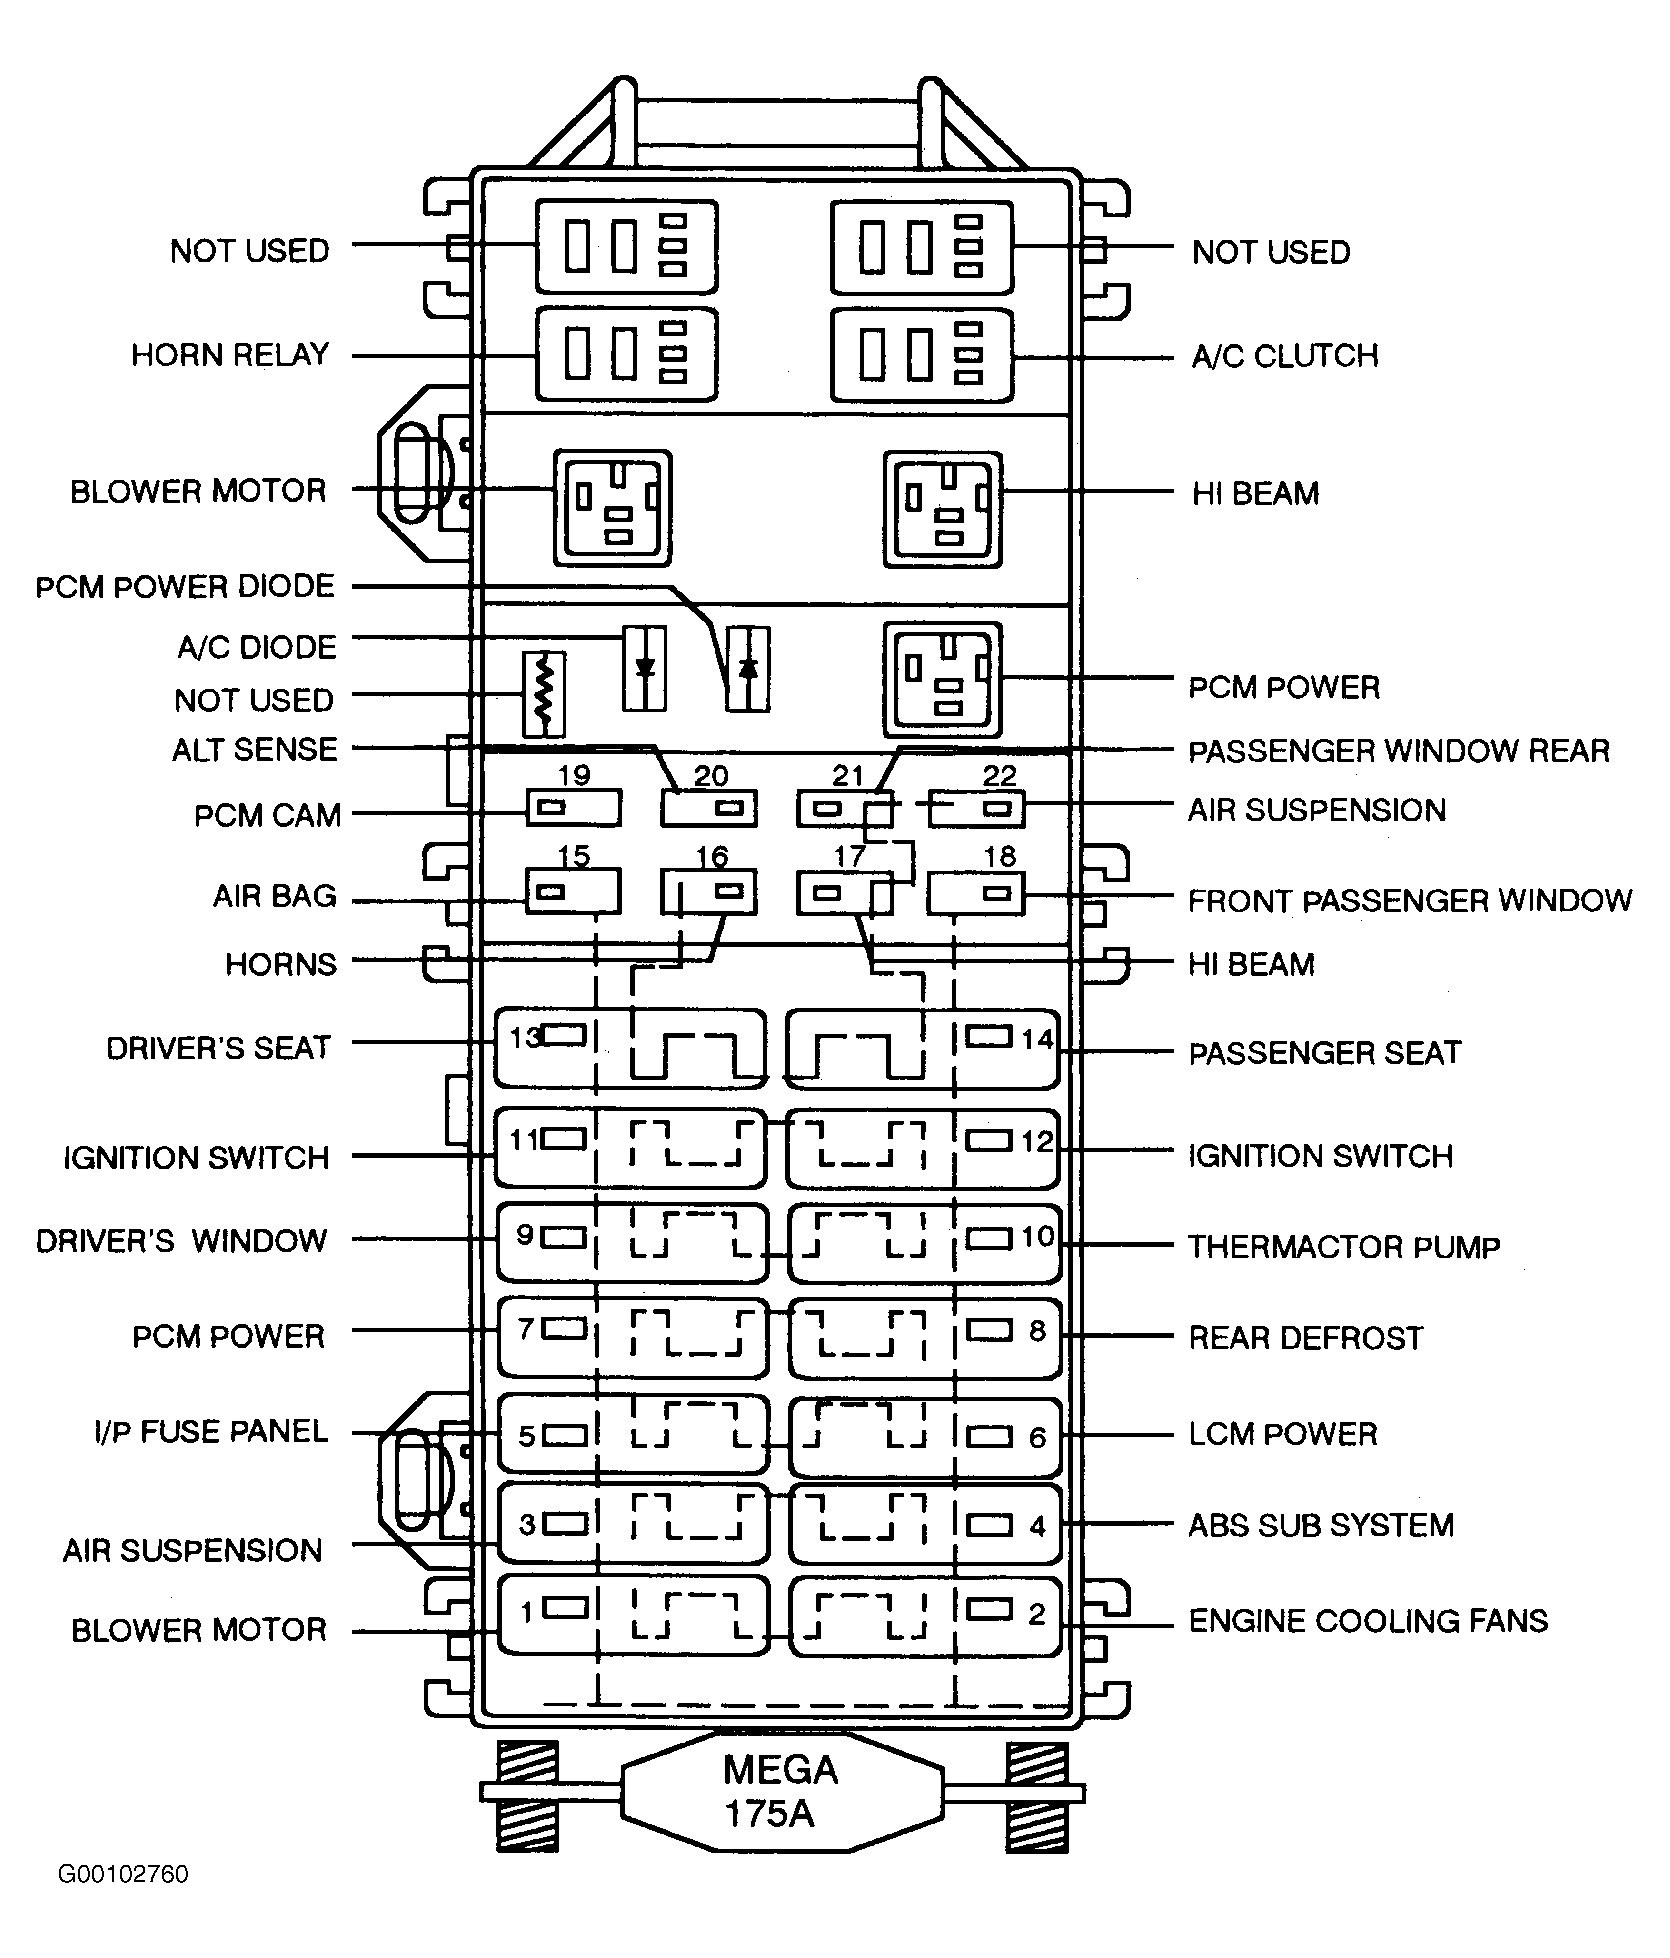 1997 lincoln town car wiring diagram anterior heart unlabeled 1990 fuse box  for free